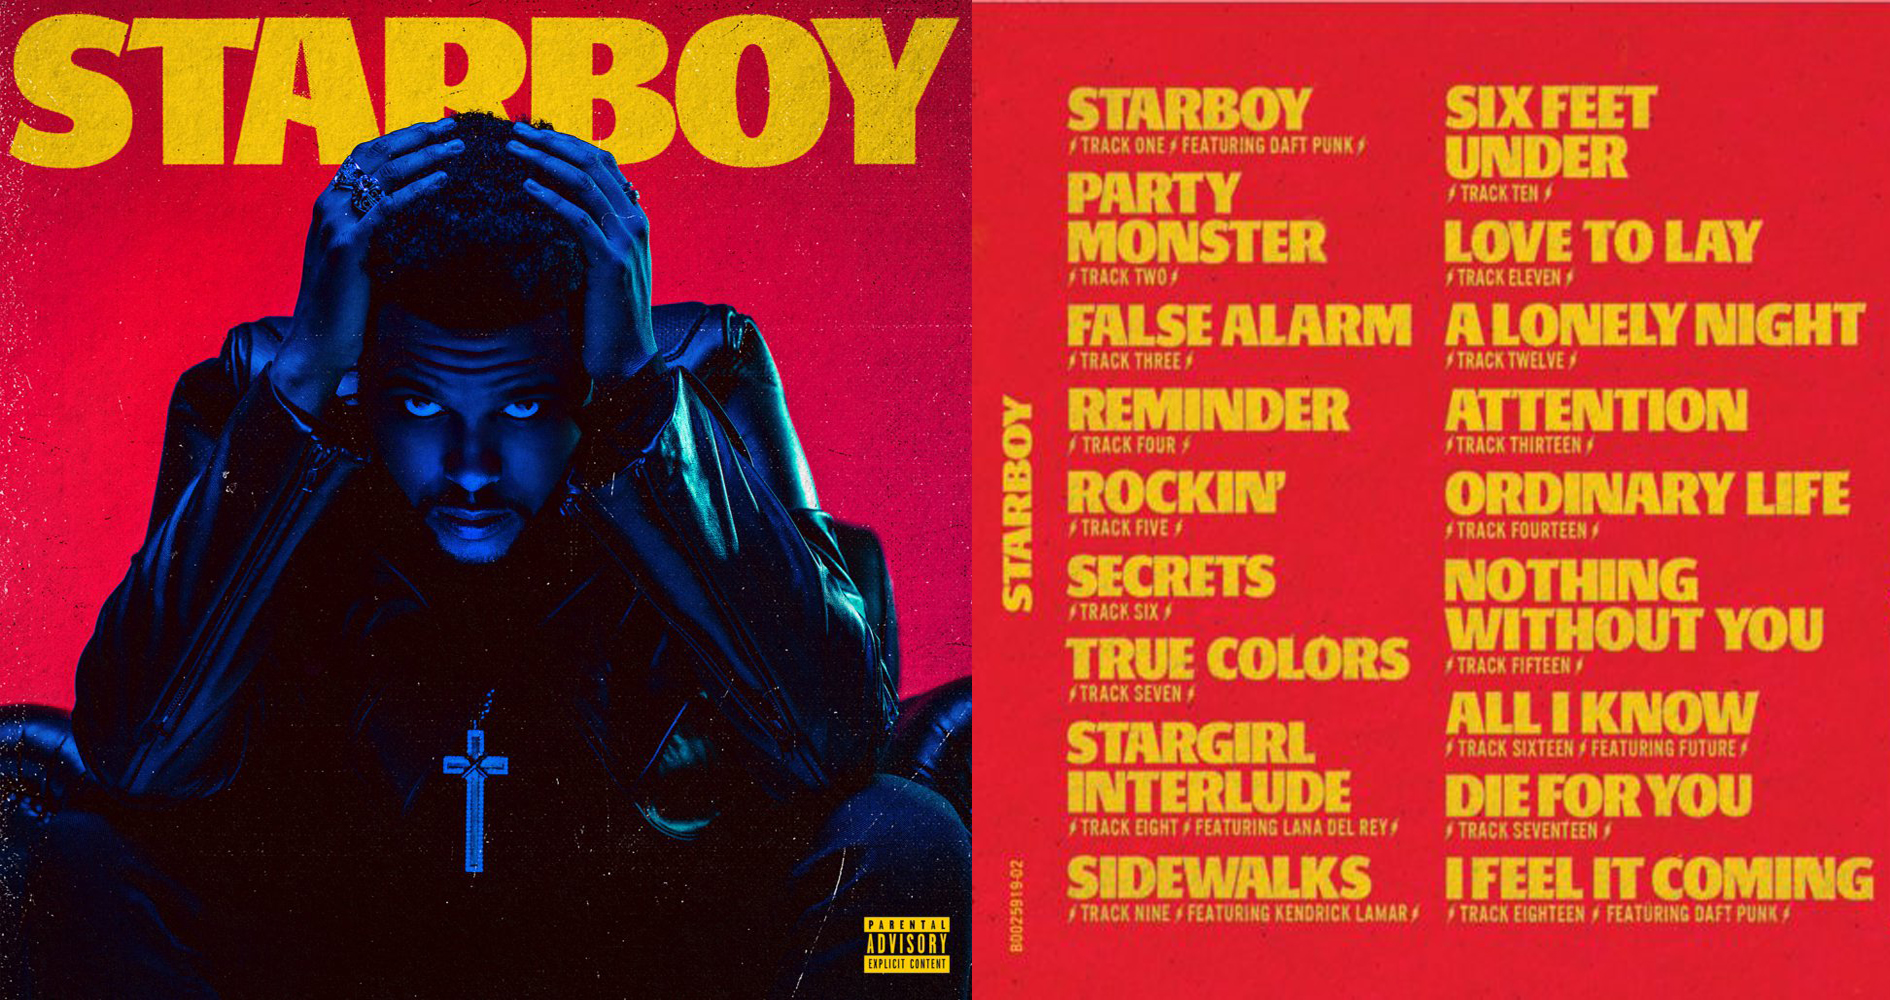 Starboy album artwork and track listing - photo courtesy of XO records